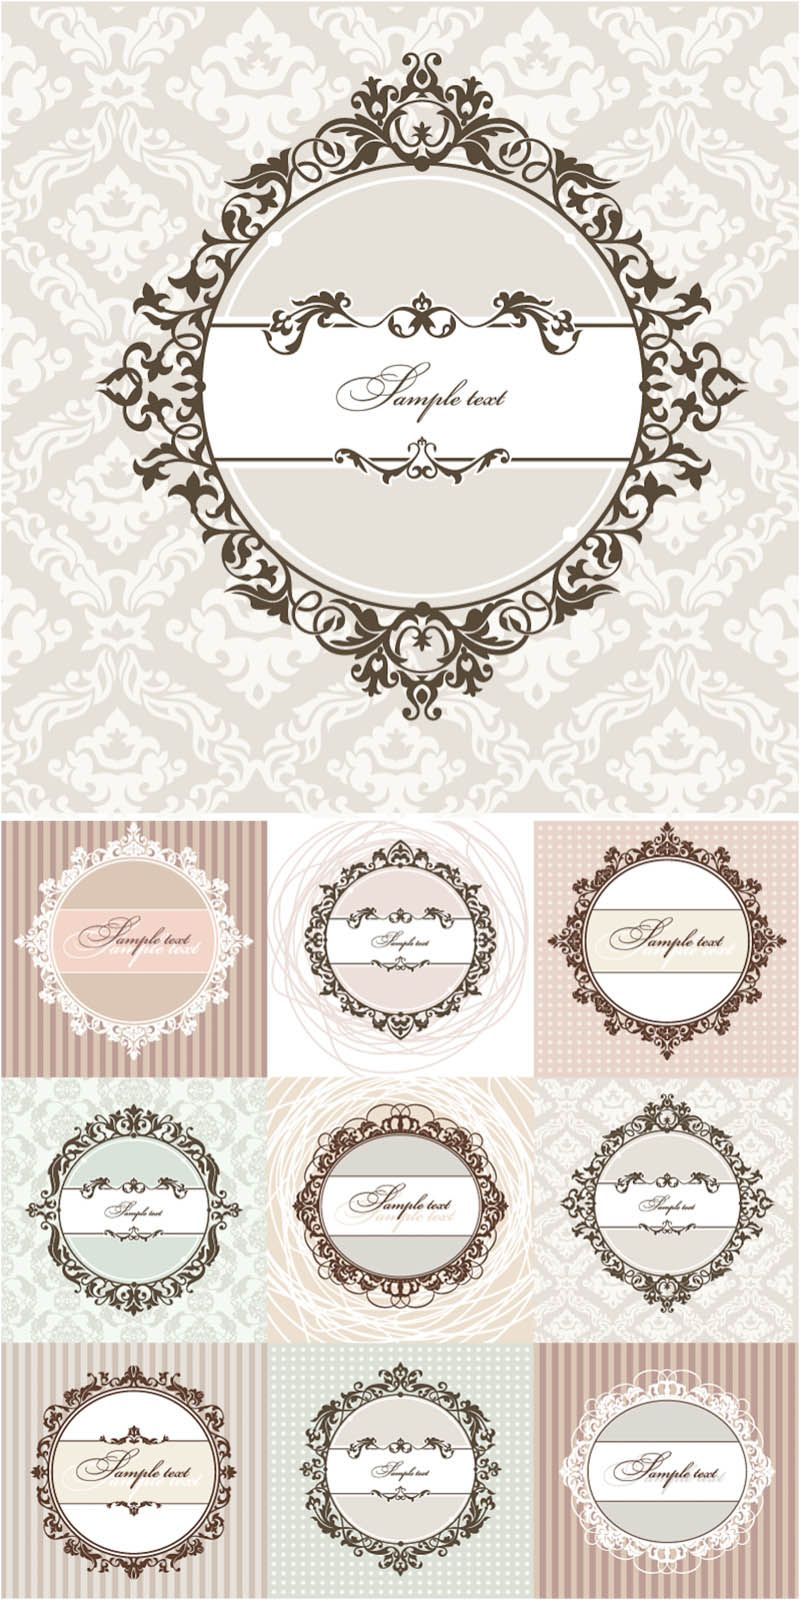 Download free vintage ornaments vintage ornaments and iders - Vintage Borders Labeling Ideas